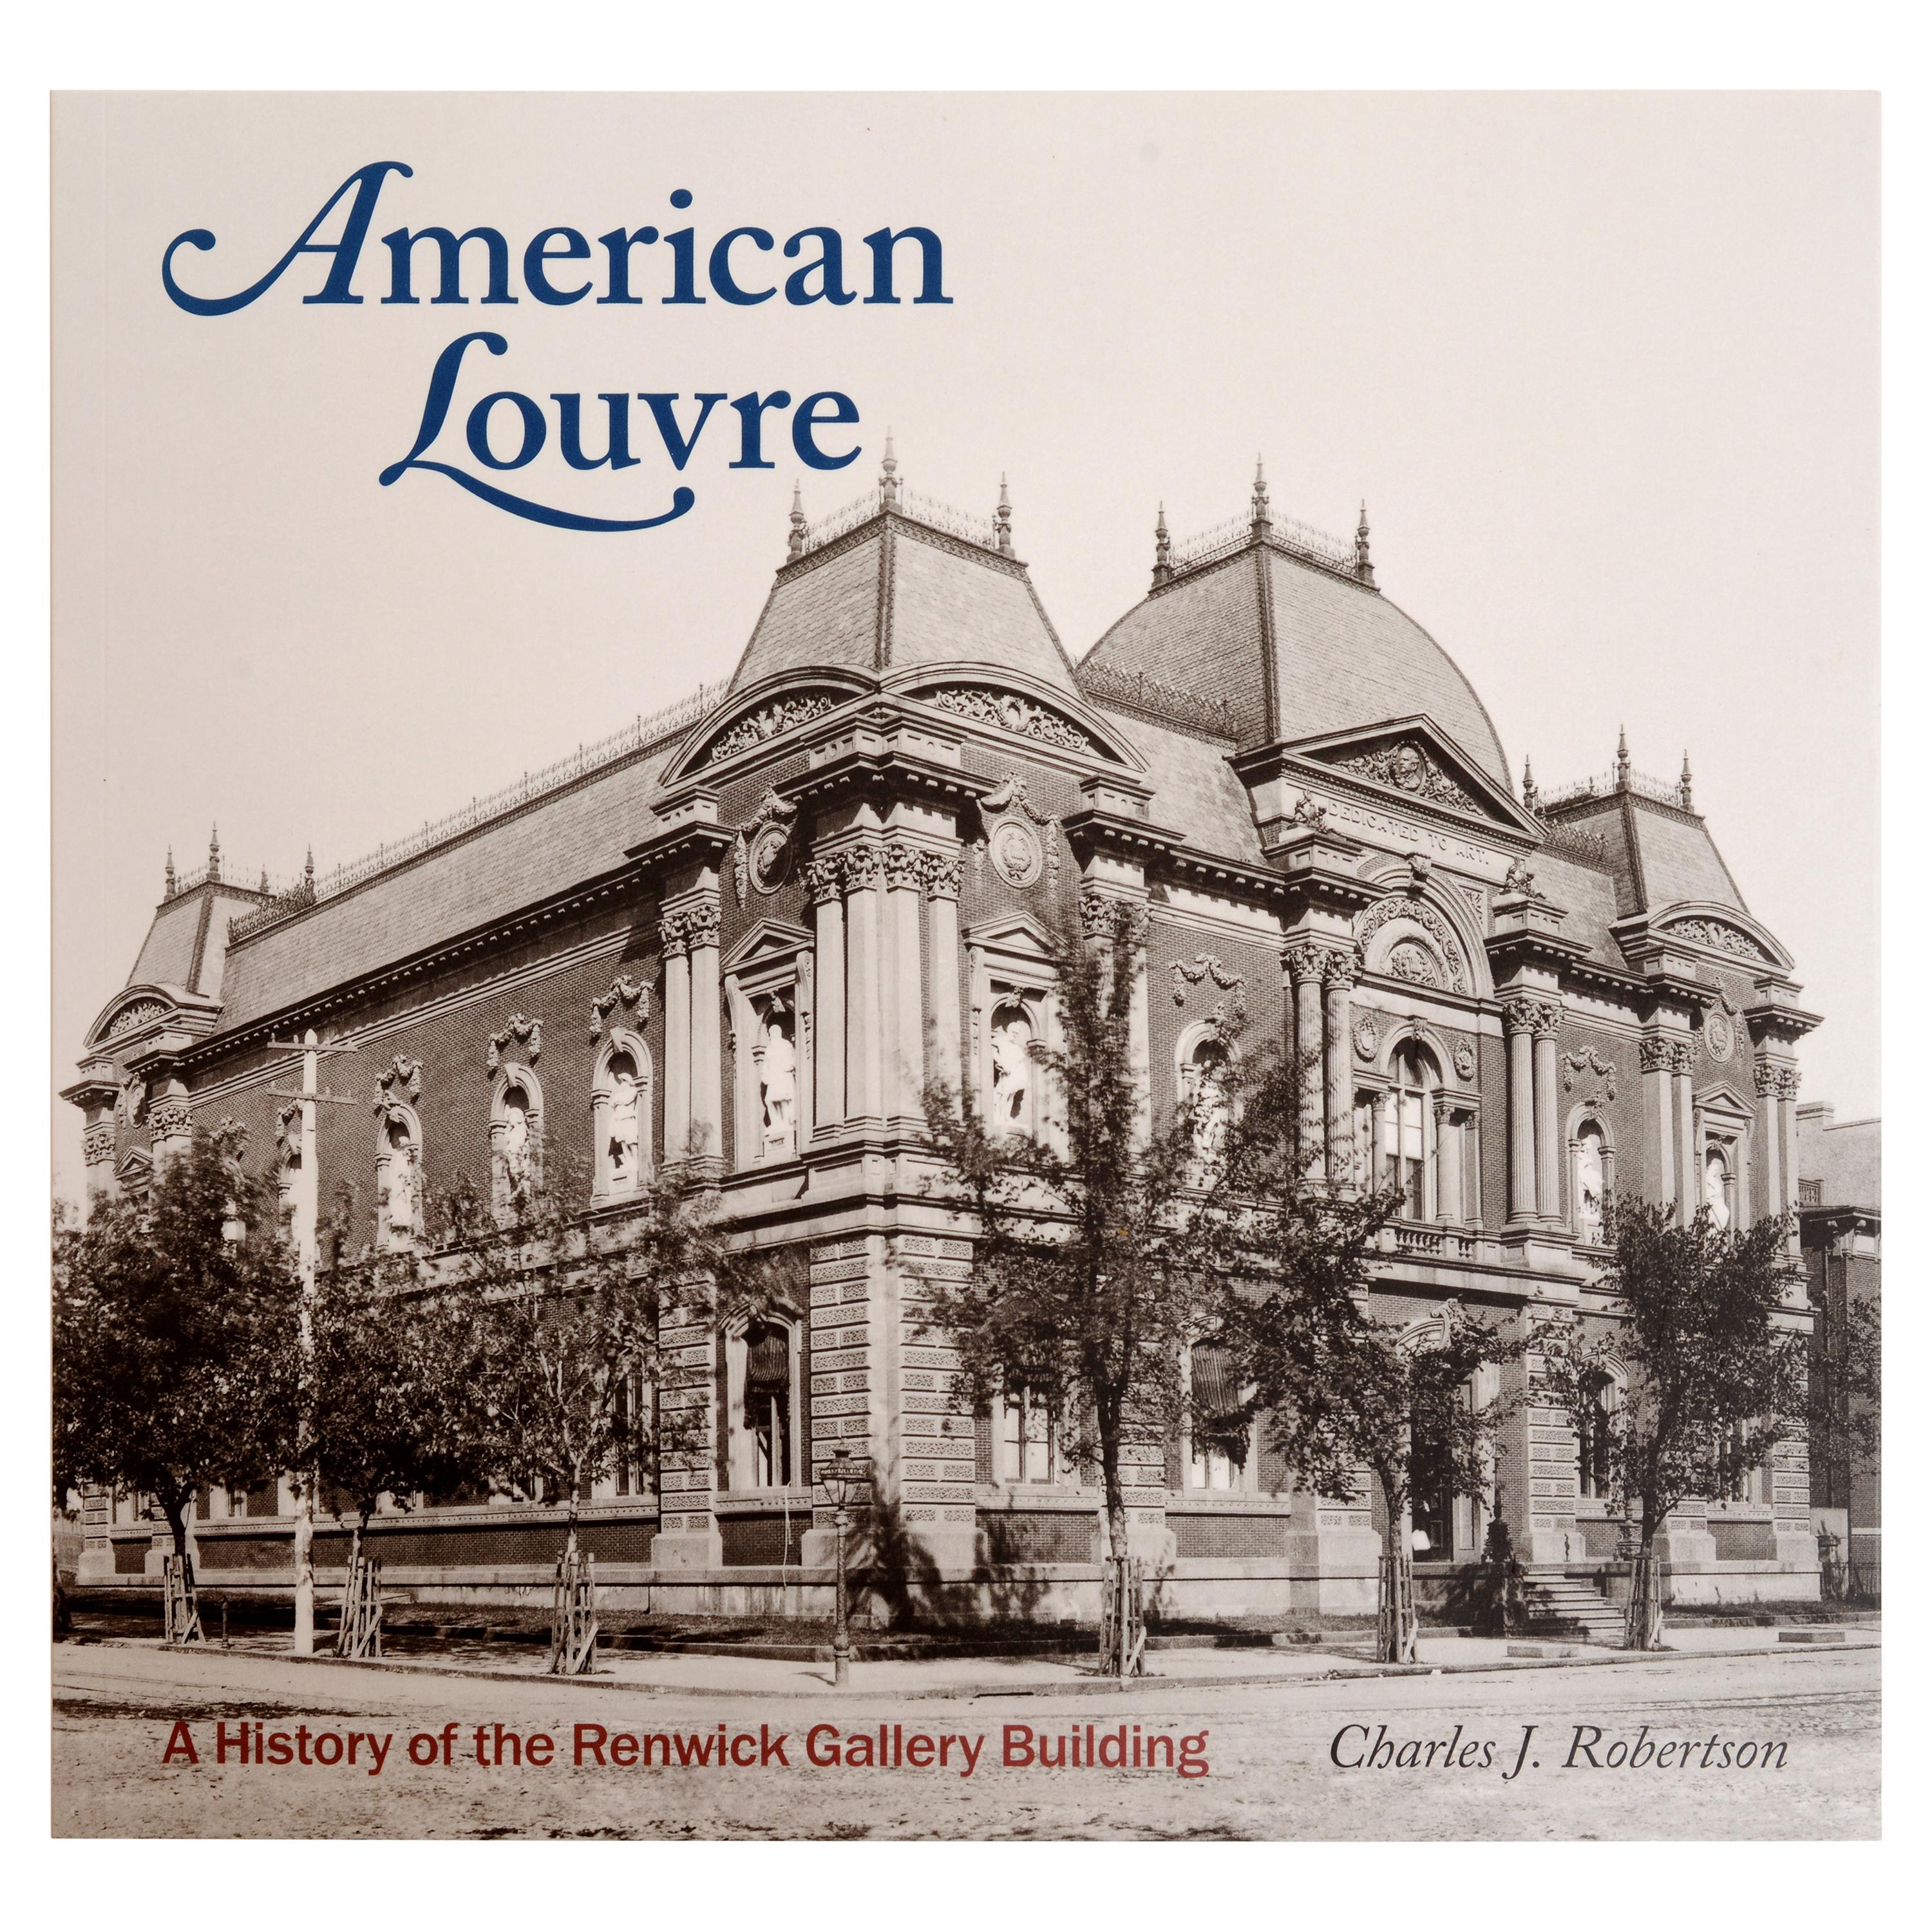 American Louvre A History of the Renwick Gallery Building 1st Ed